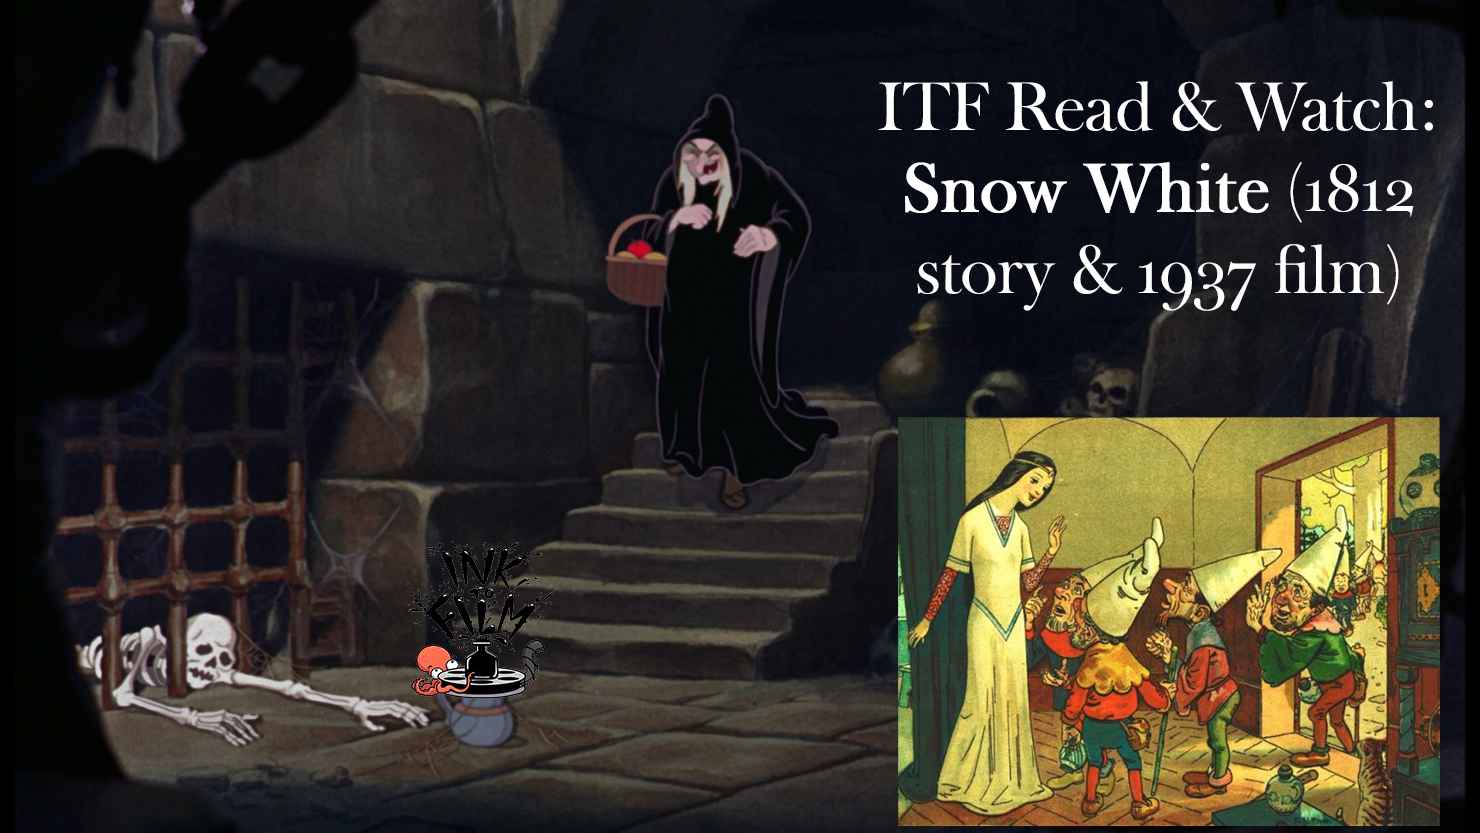 Evil-Witch-Cackling-in-Her-Dungeon-snow-white-and-the-seven-dwarfsITF.jpg